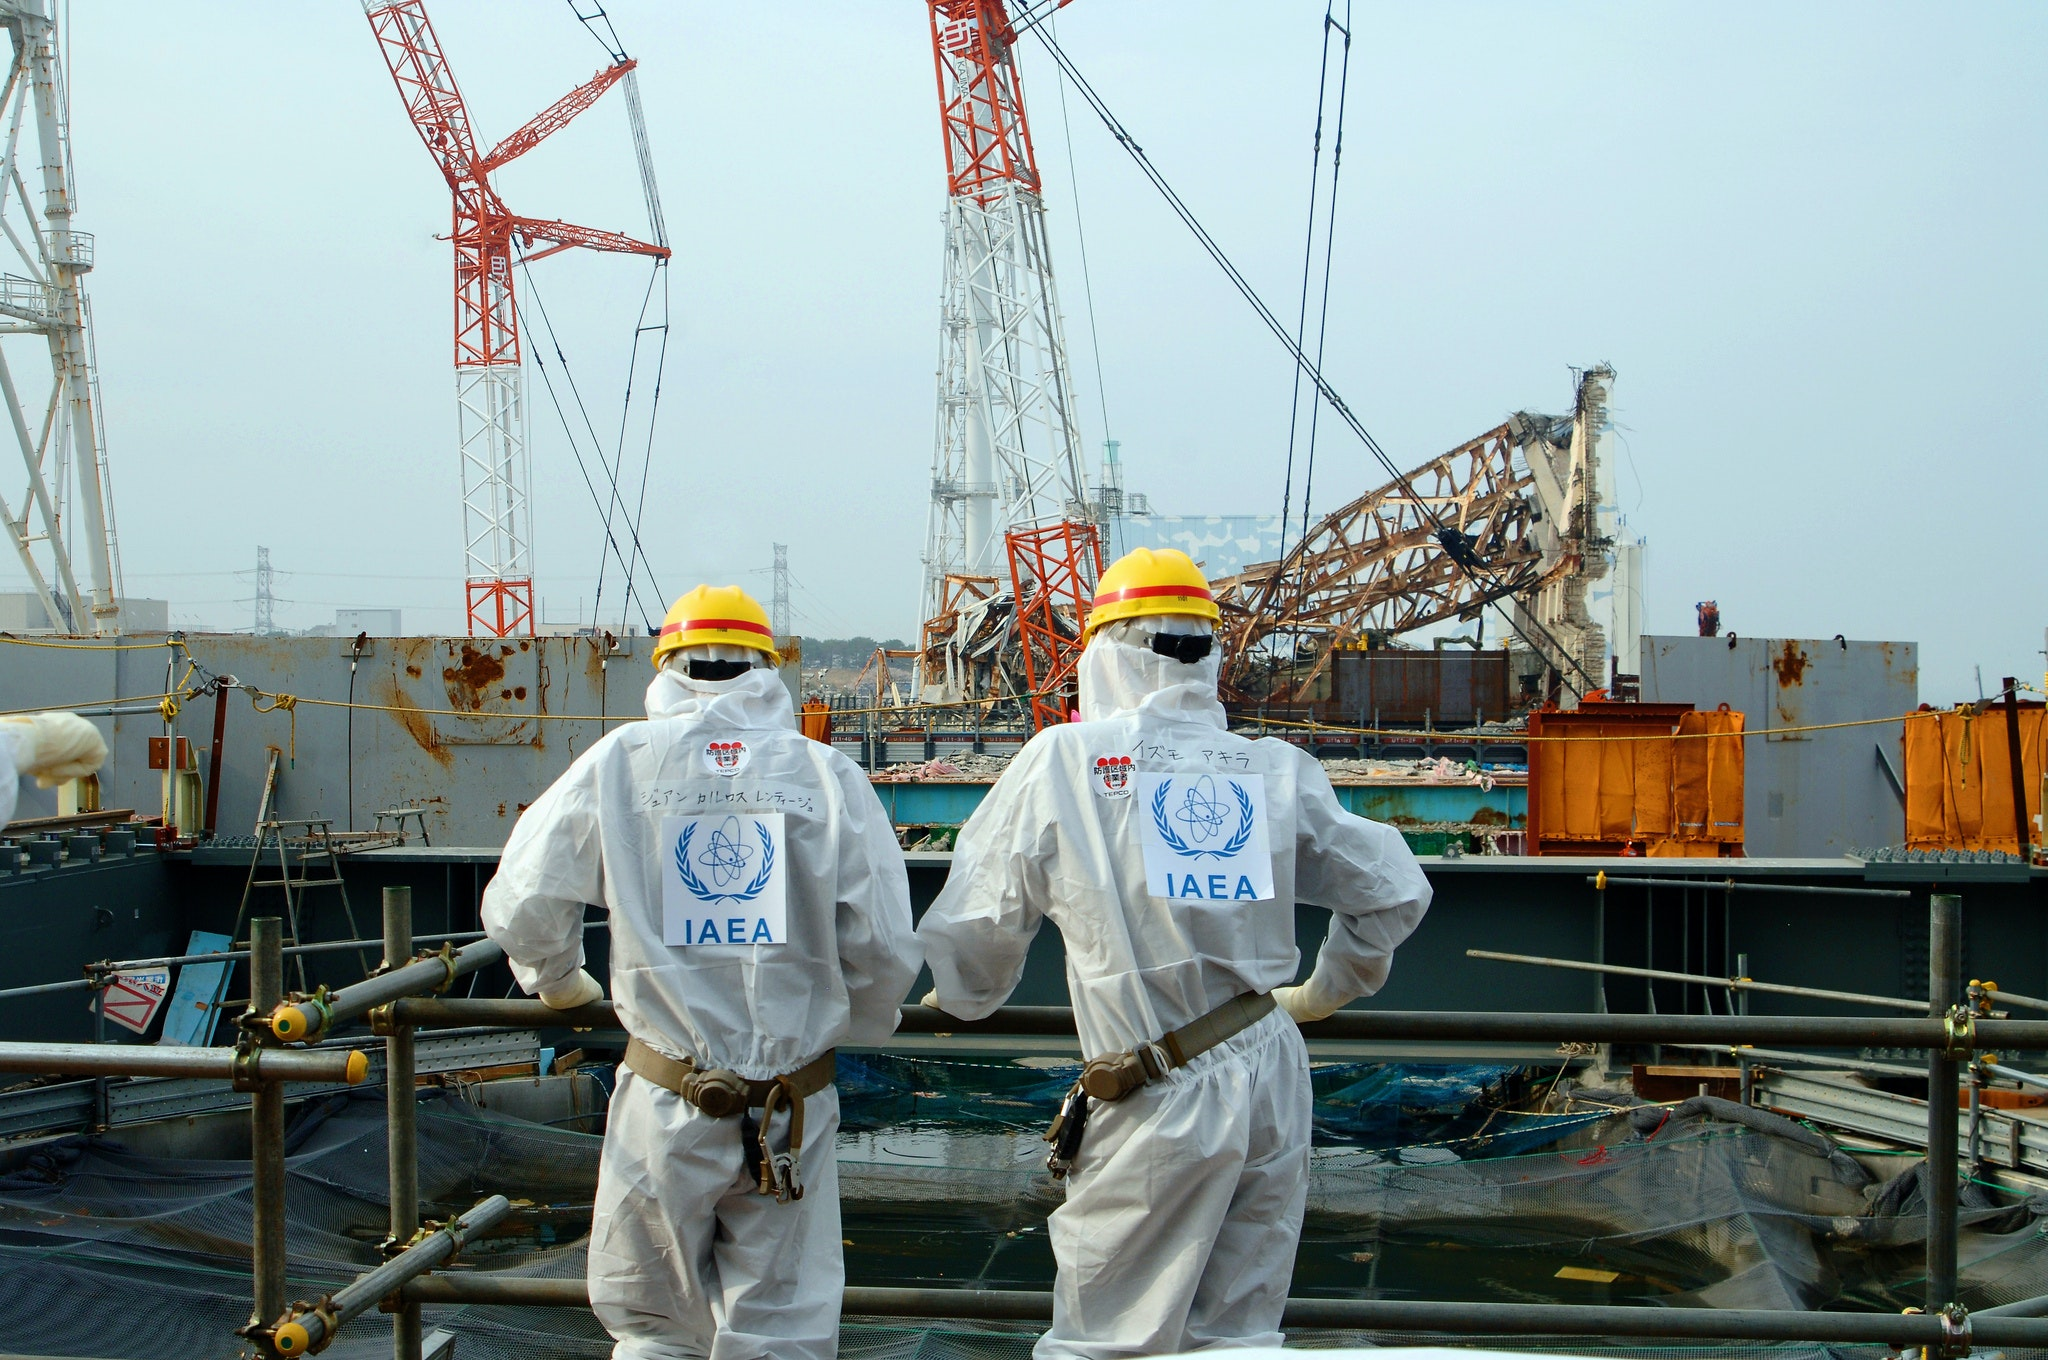 Two IAEA agents examine work Unit 4 of the Fukushima Daiichi Nuclear Power Station (April 17, 2013). Photo credit: Greg Webb/IAEA, CC BY